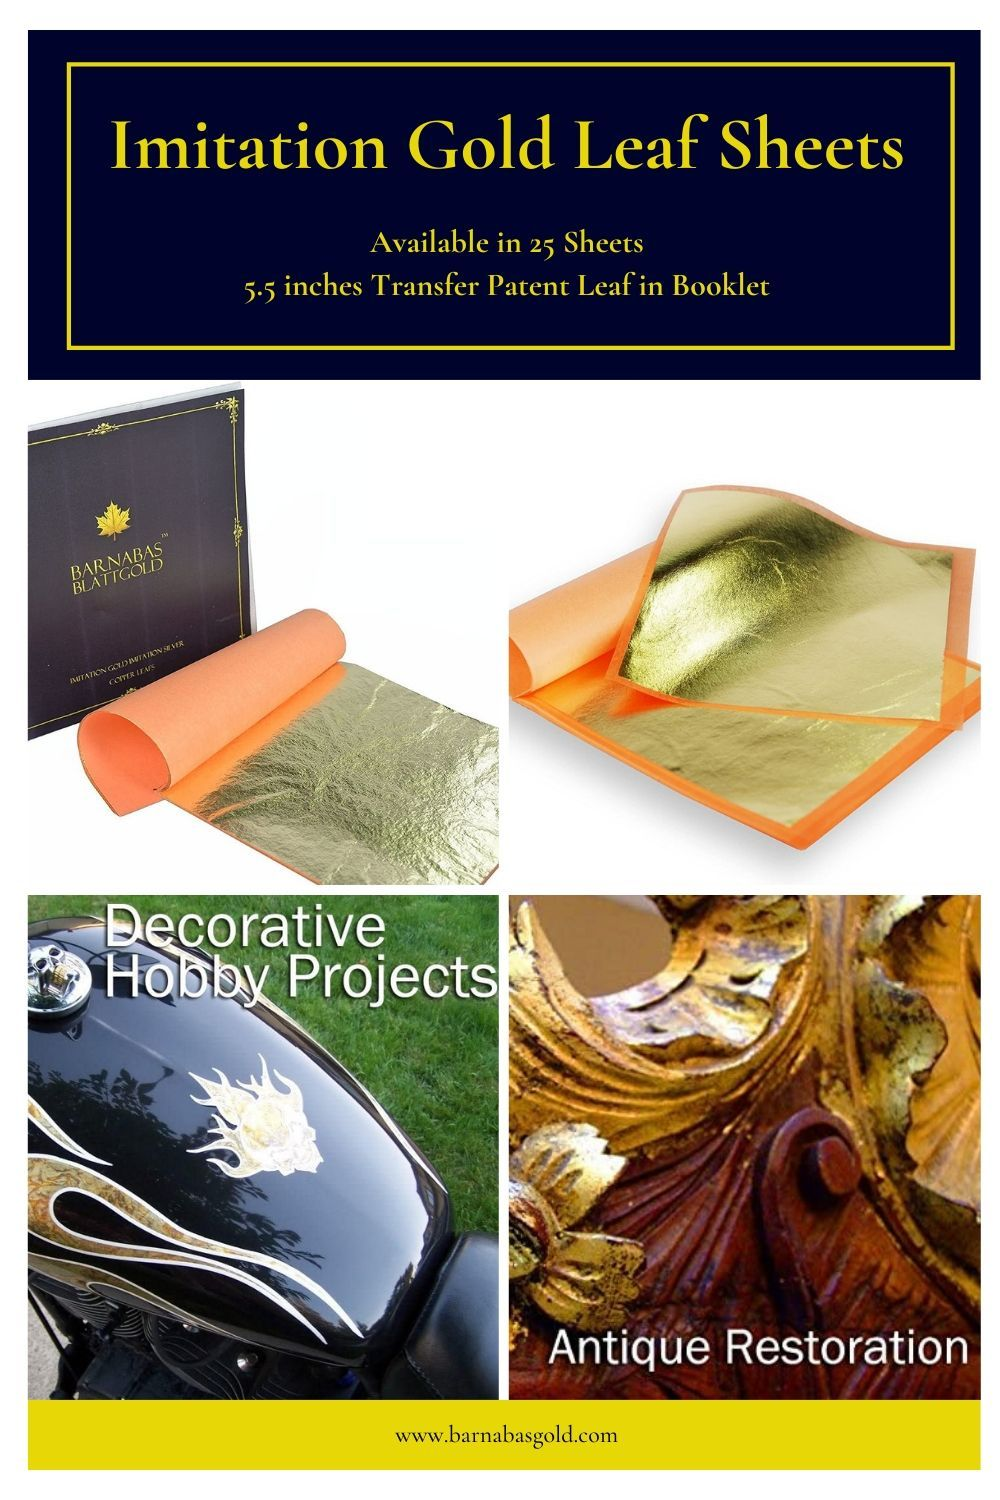 25 Sheets 5.5 inches Booklet Transfer Patent Leaf Genuine Copper Leaf Sheets by Barnabas Blattgold